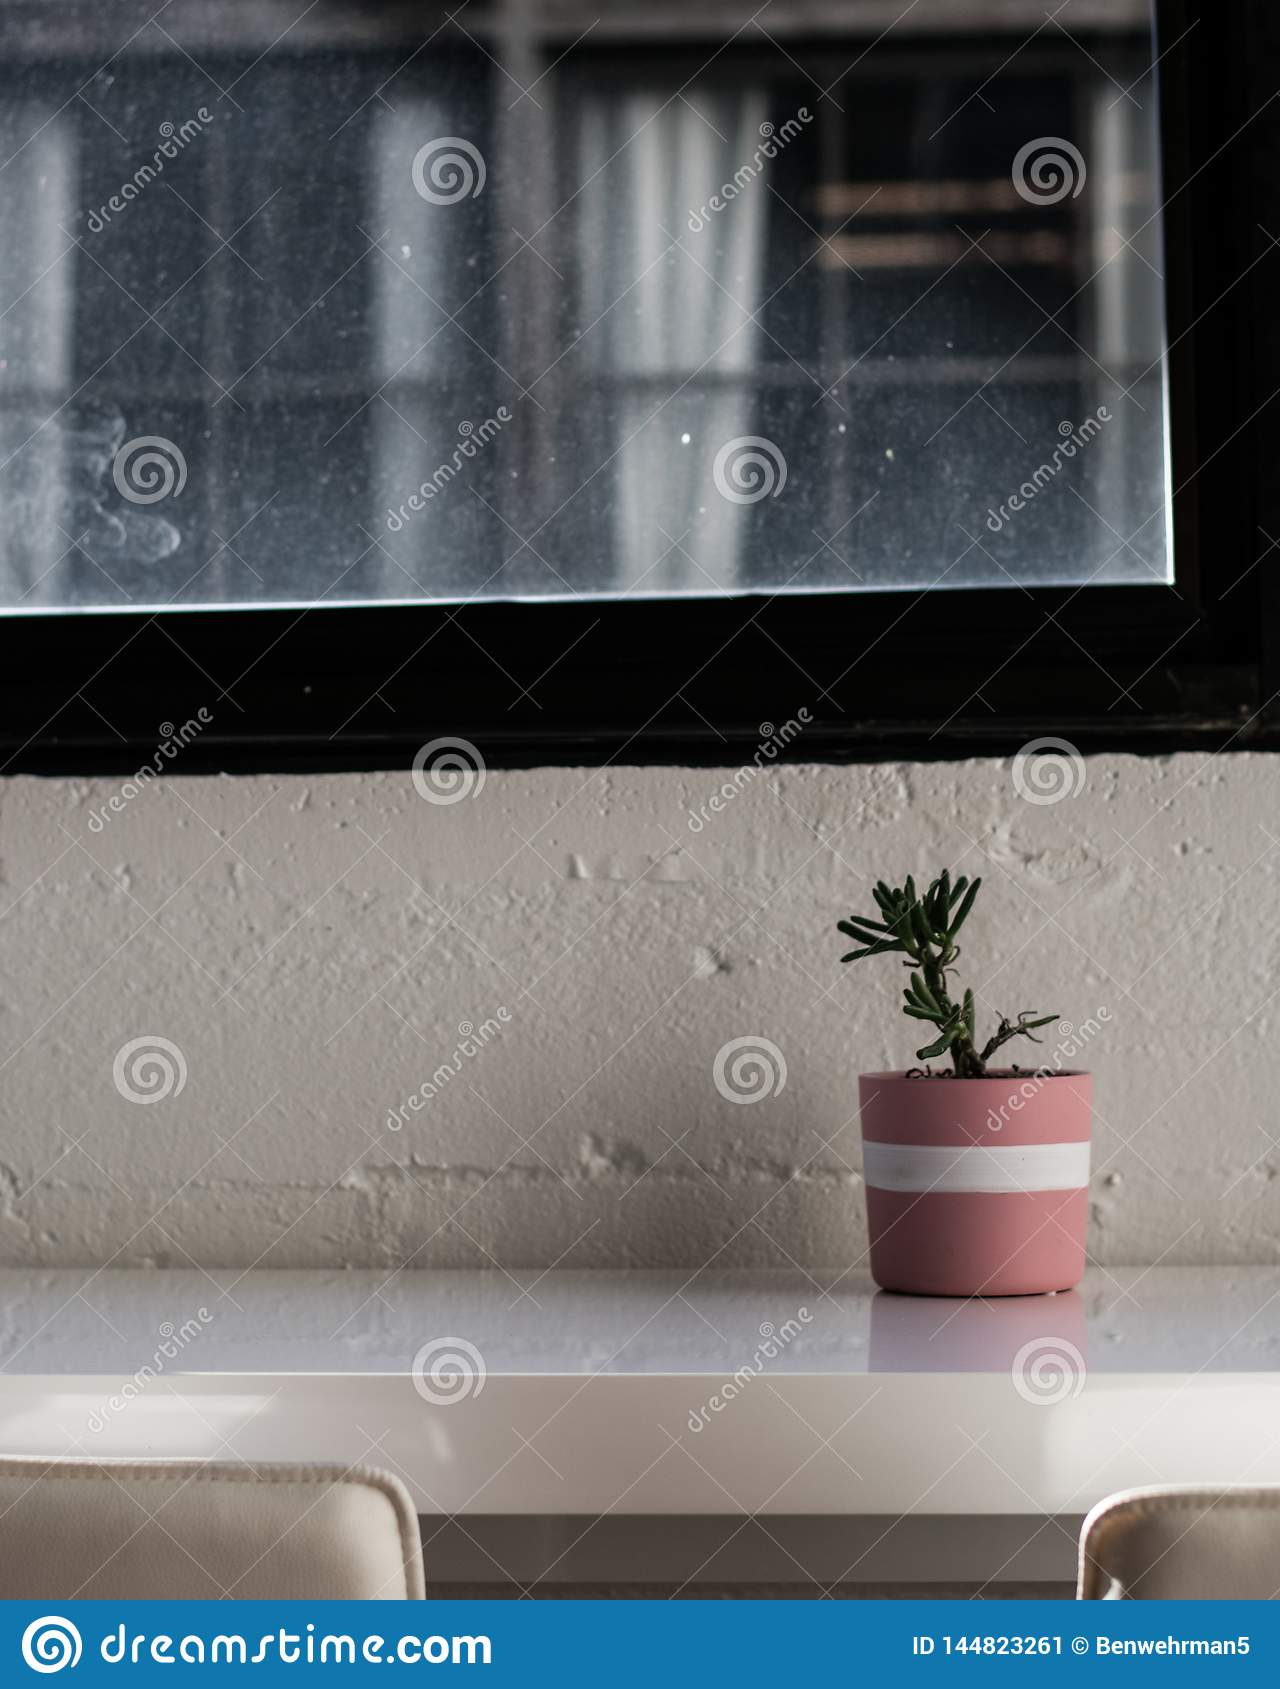 Houseplant on the table